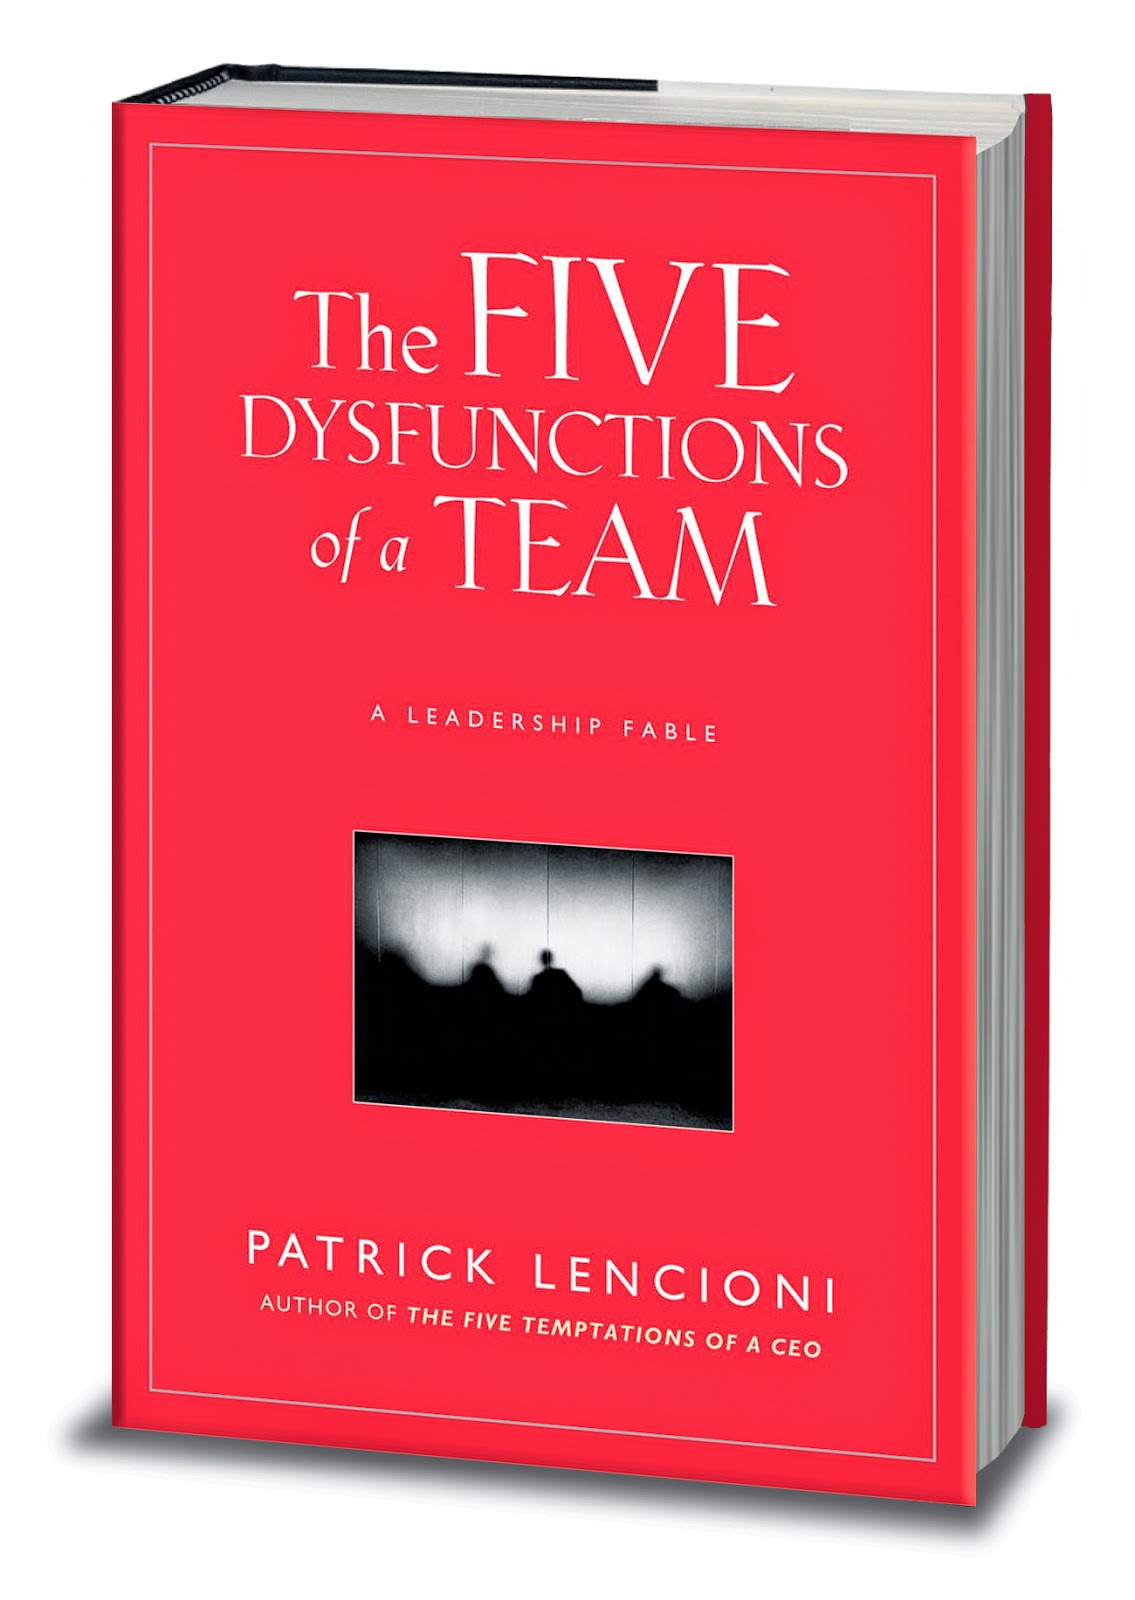 The Five Dysfunctions of a Team - Patrick Lencioni